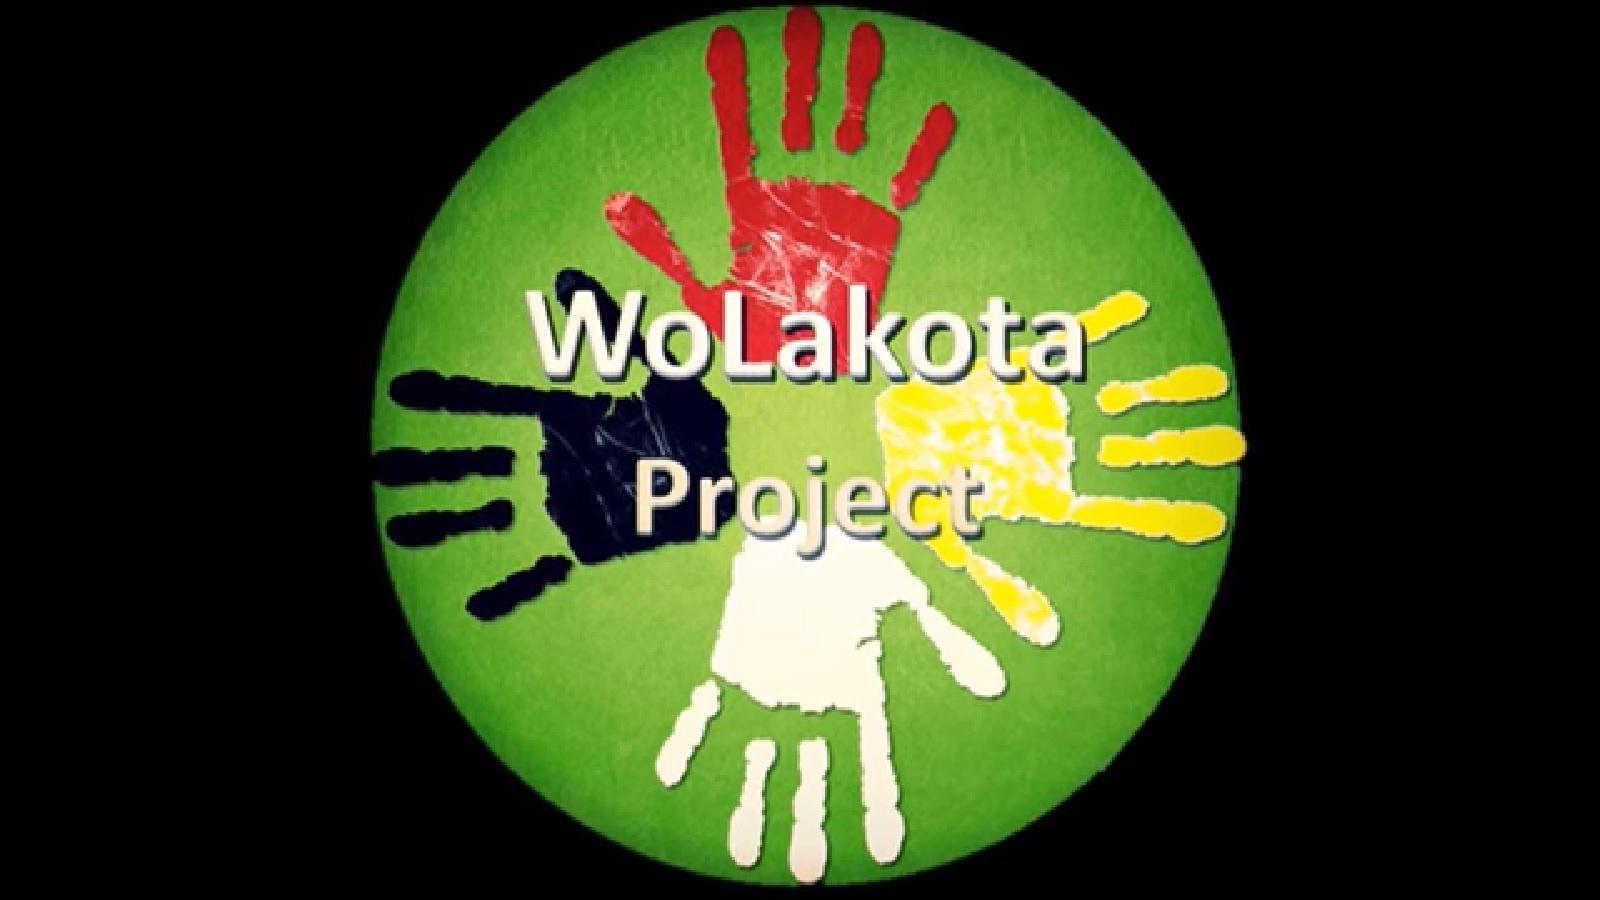 WoLokota Project